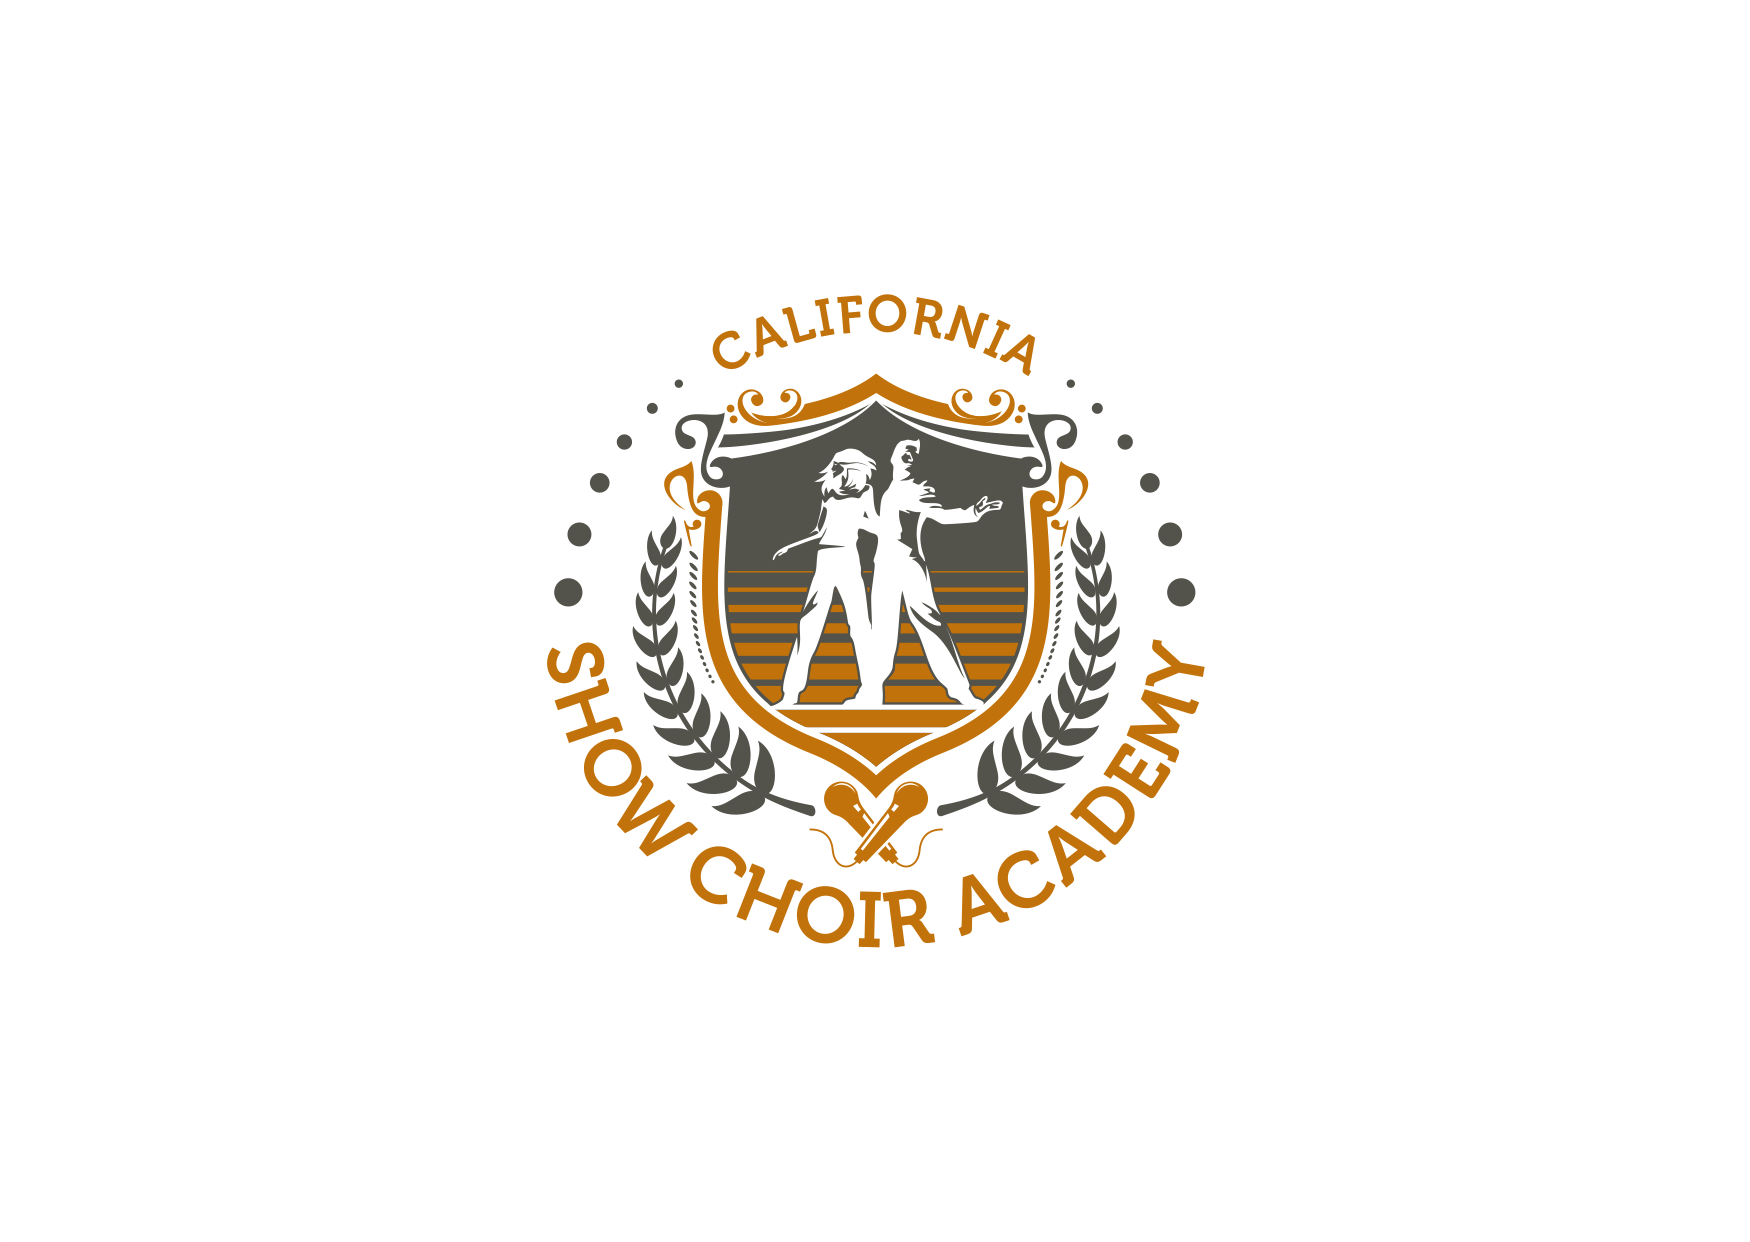 Create a 'design in motion' for the Show Choir Academy